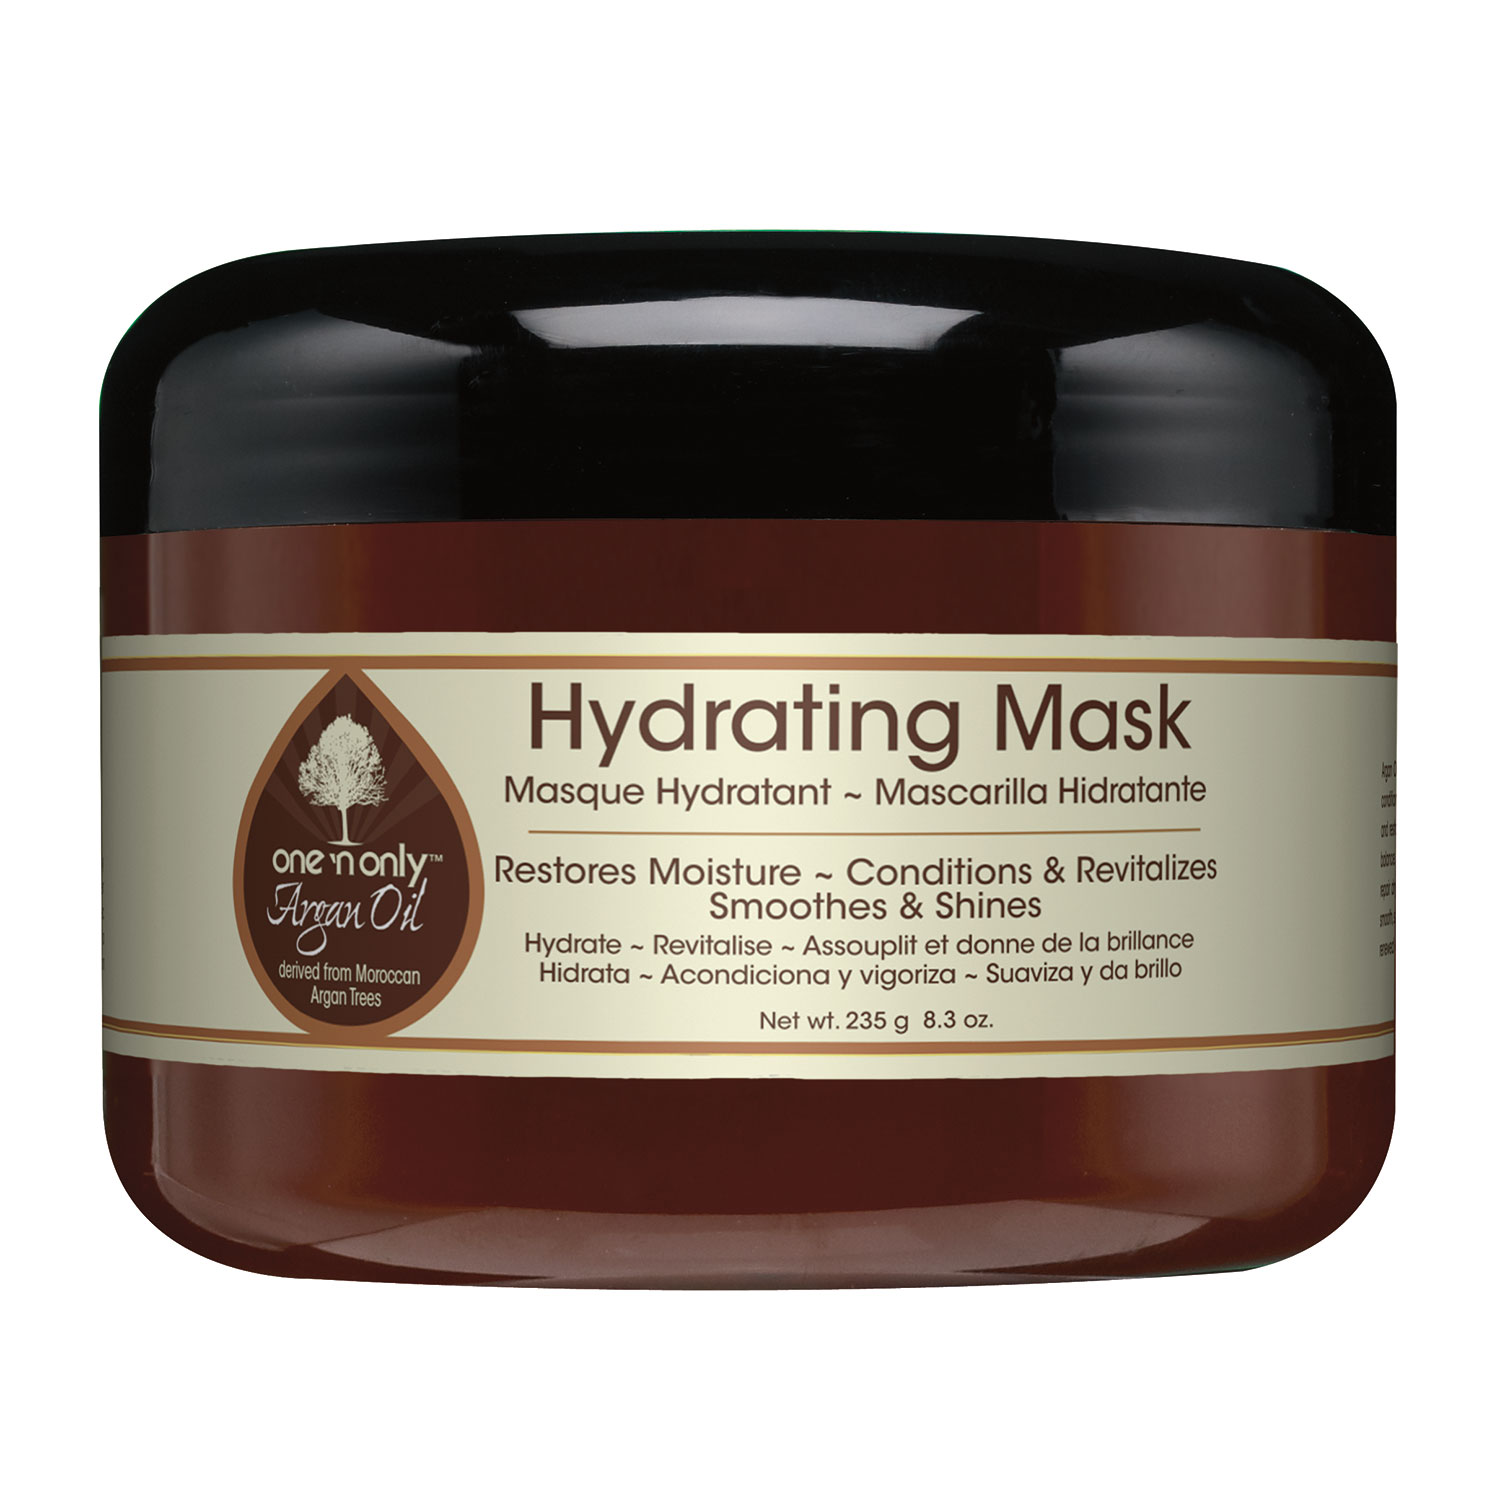 Image of One n Only Argan Oil Hydrating Mask - 8oz